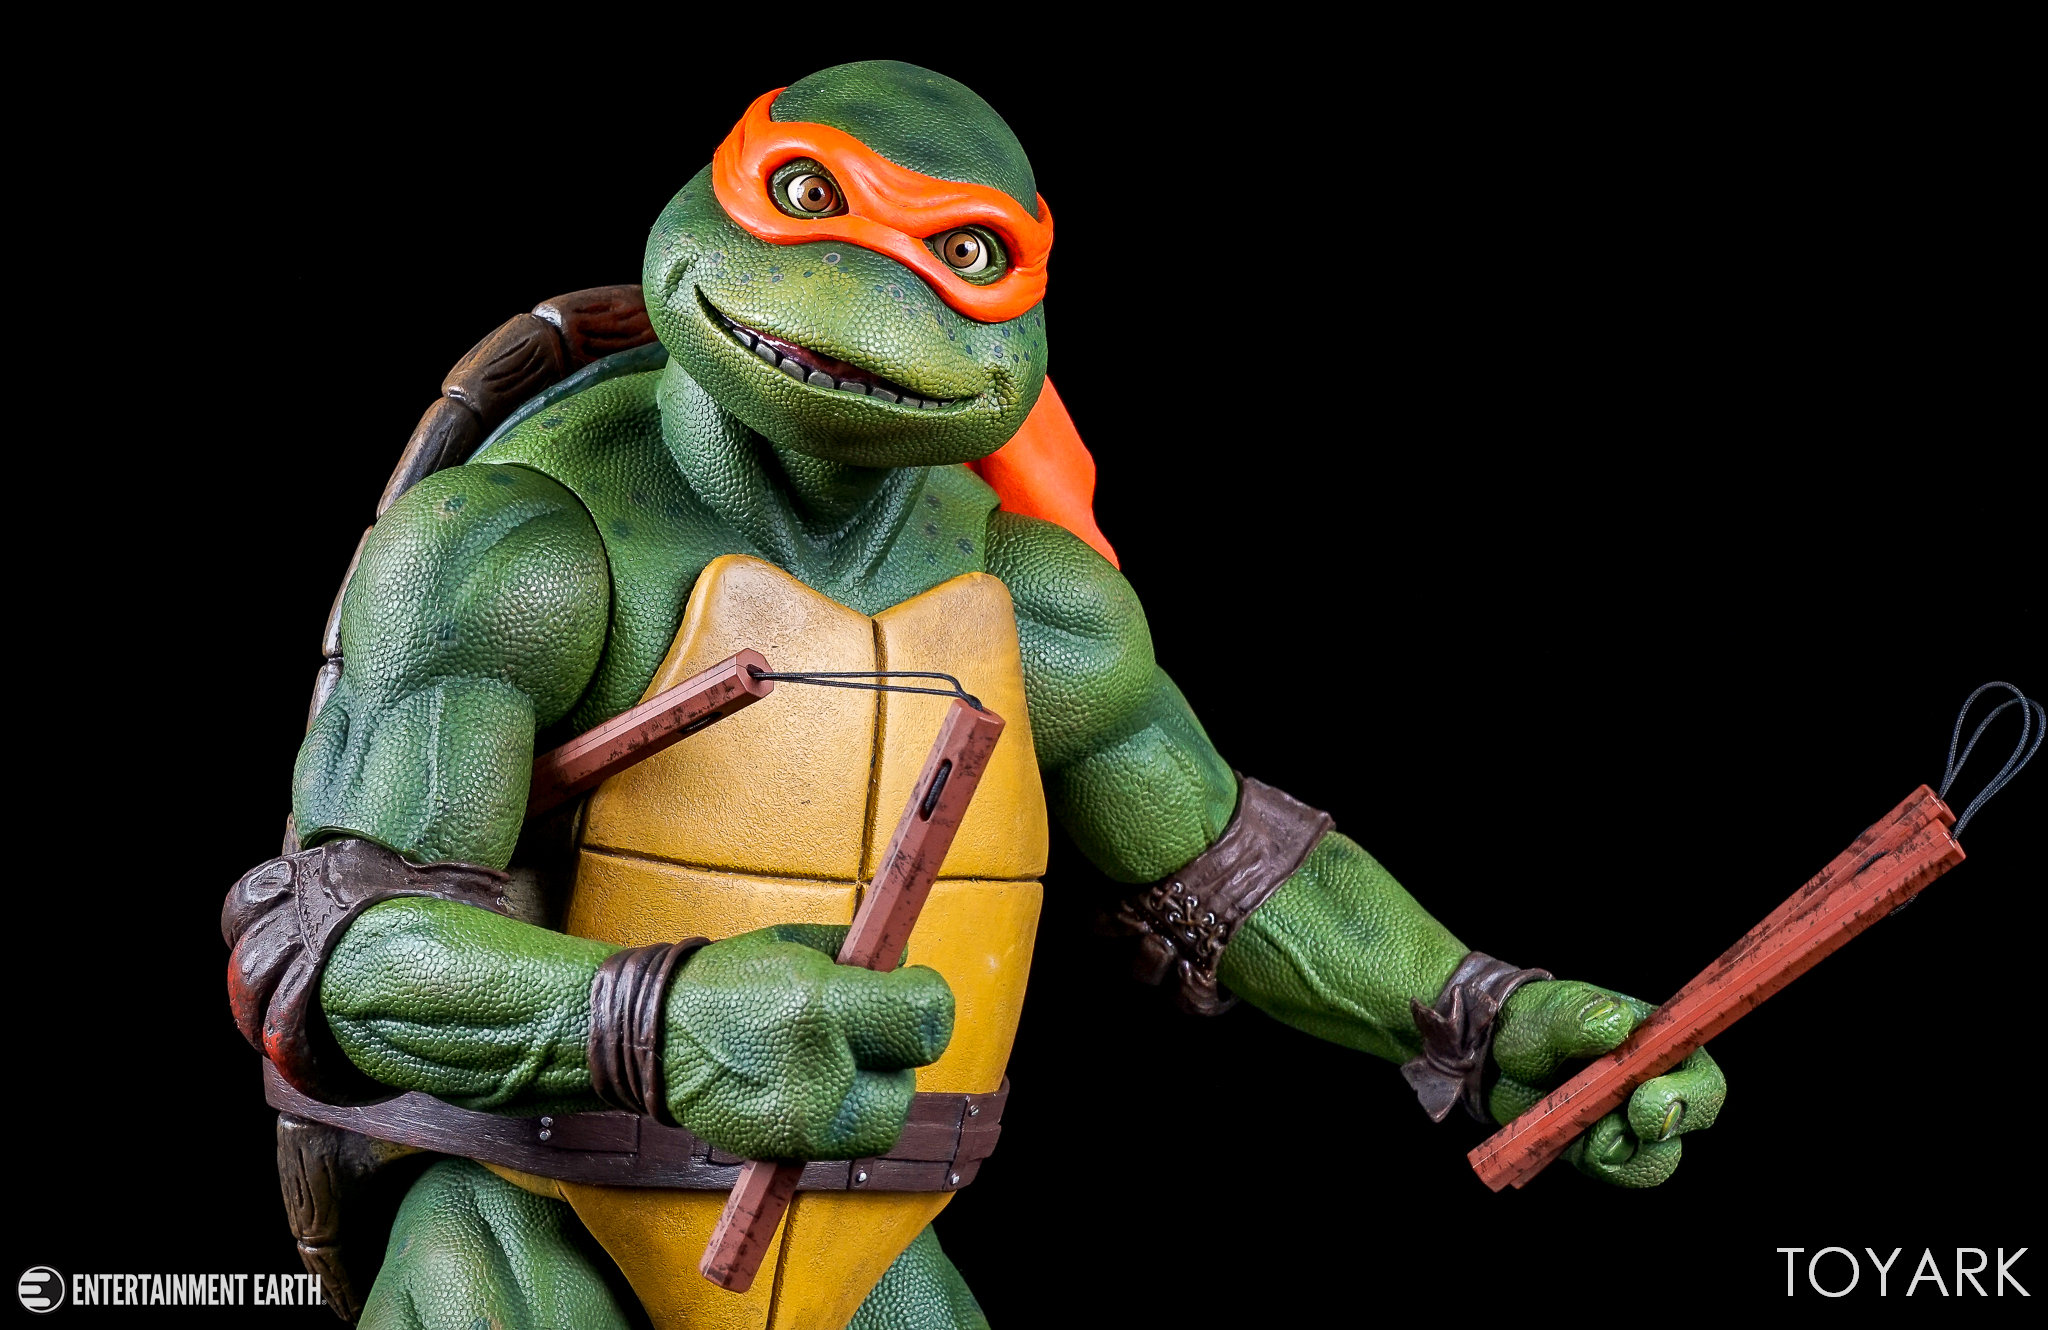 http://news.toyark.com/wp-content/uploads/sites/4/2017/10/NECA-Quarter-Scale-TMNT-Michelangelo-016.jpg